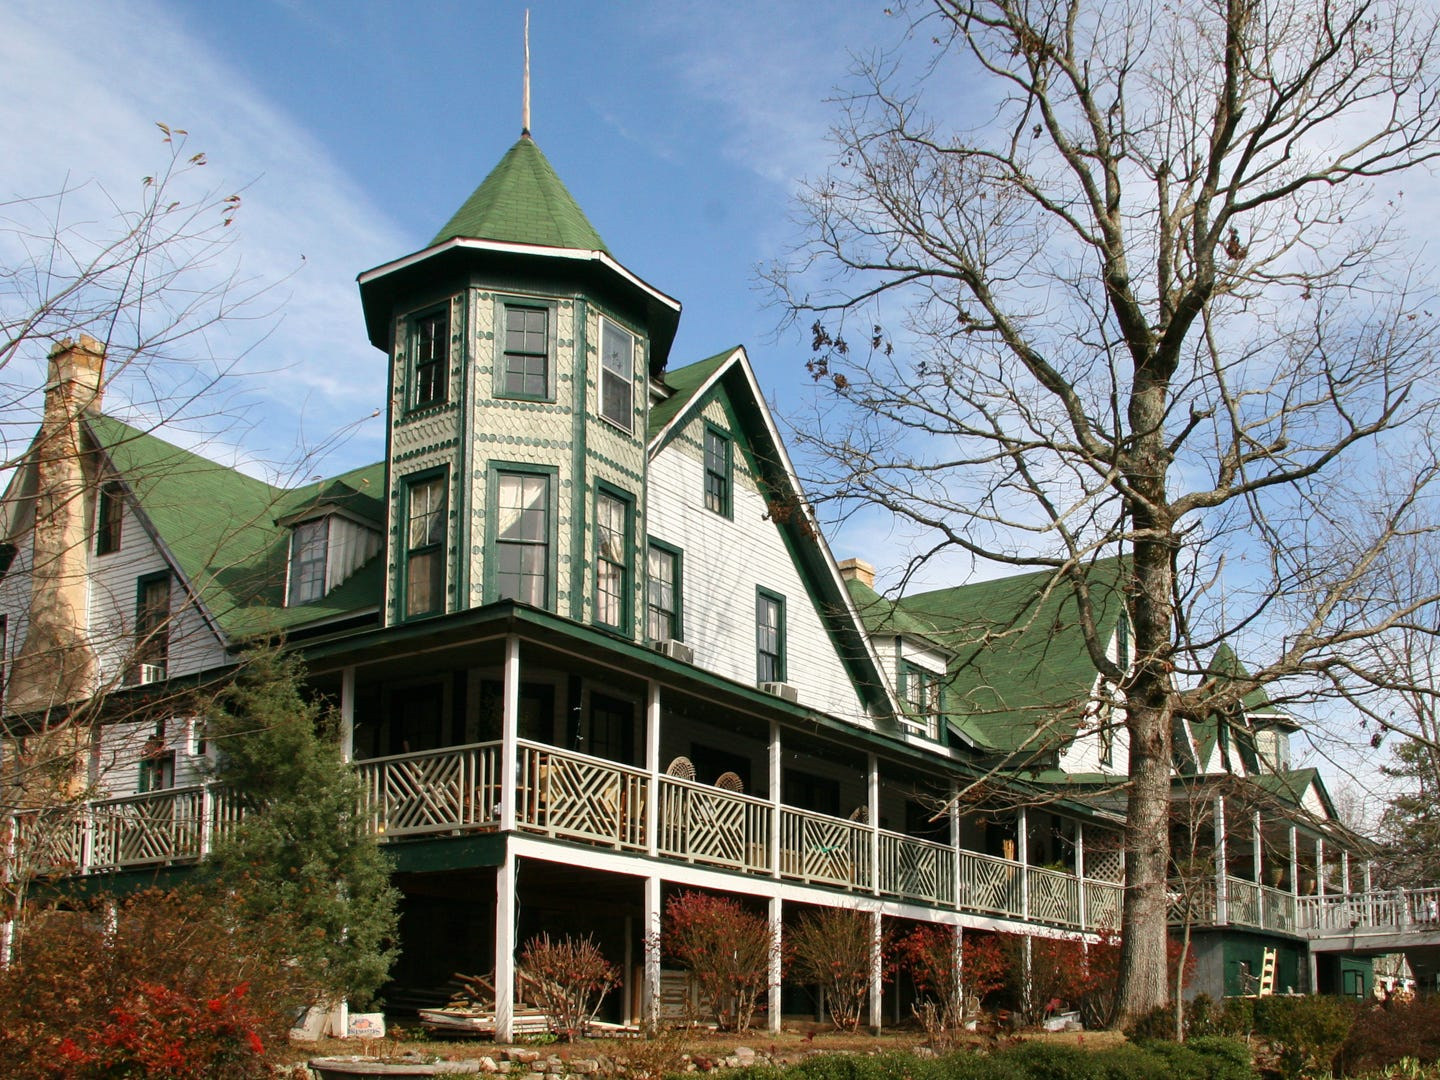 Alabama: For a quiet escape, head to Mentone, a picturesque mountain town located in northeast Alabama. Outdoor enthusiasts can hike in DeSoto State Park, kayak in Little River Falls or ski at the Cloudmont Ski and Golf Resort, depending on the time of year. If strolling and shopping are more your scene, there are plenty of shops to explore in downtown Mentone. And no visit is complete without a stop at the quaint Wildflower Cafe, which is best known for their tomato pie. If you're flying in from out of state, plan a trip for September, which is the cheapest time to visit the state of Alabama. Wildflower's Famous Tomato Pie: $5.